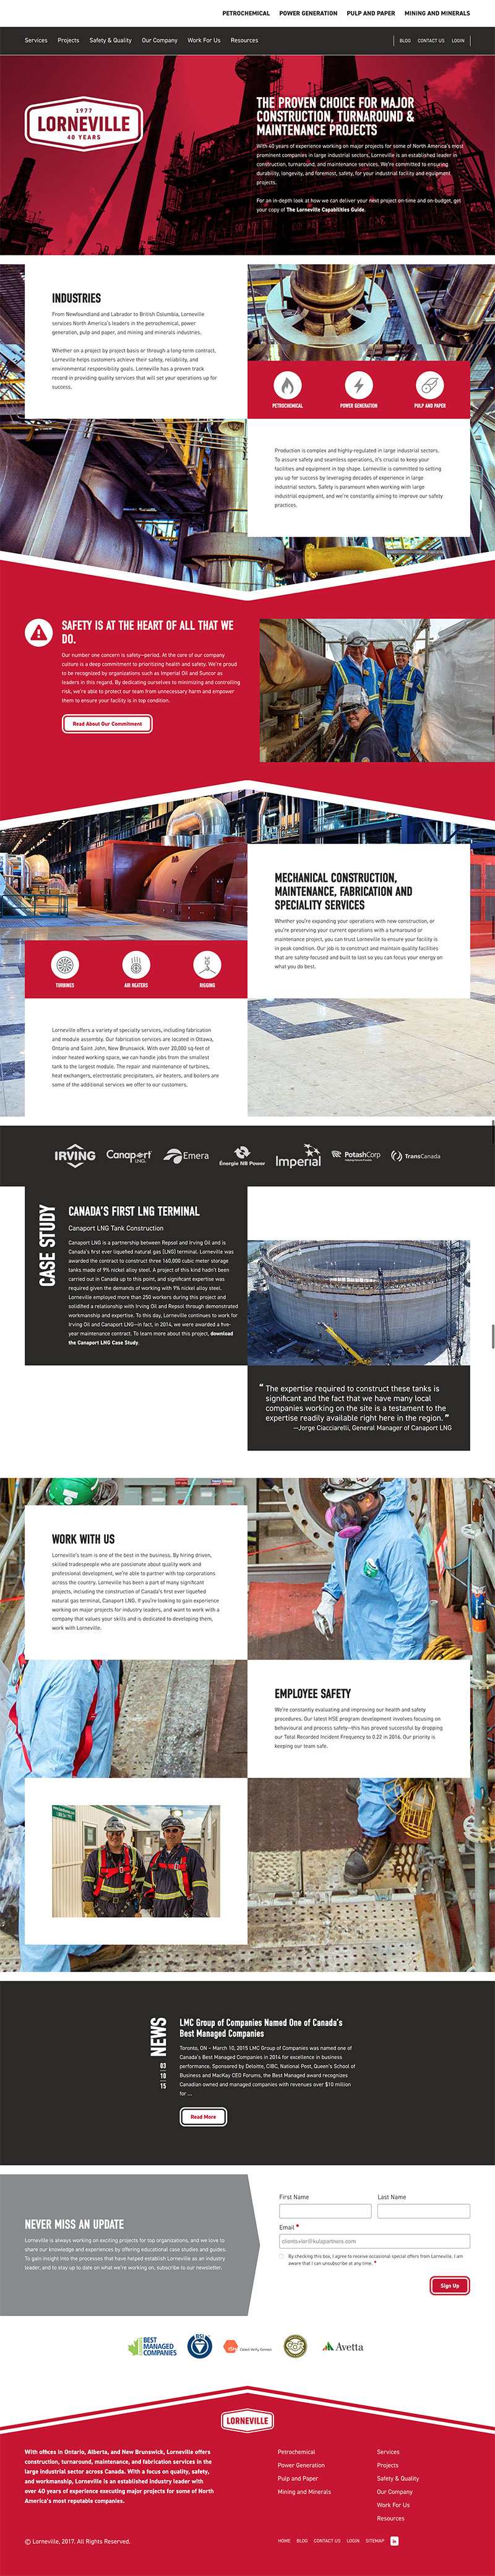 A screenshot of the full Lorneville homepage